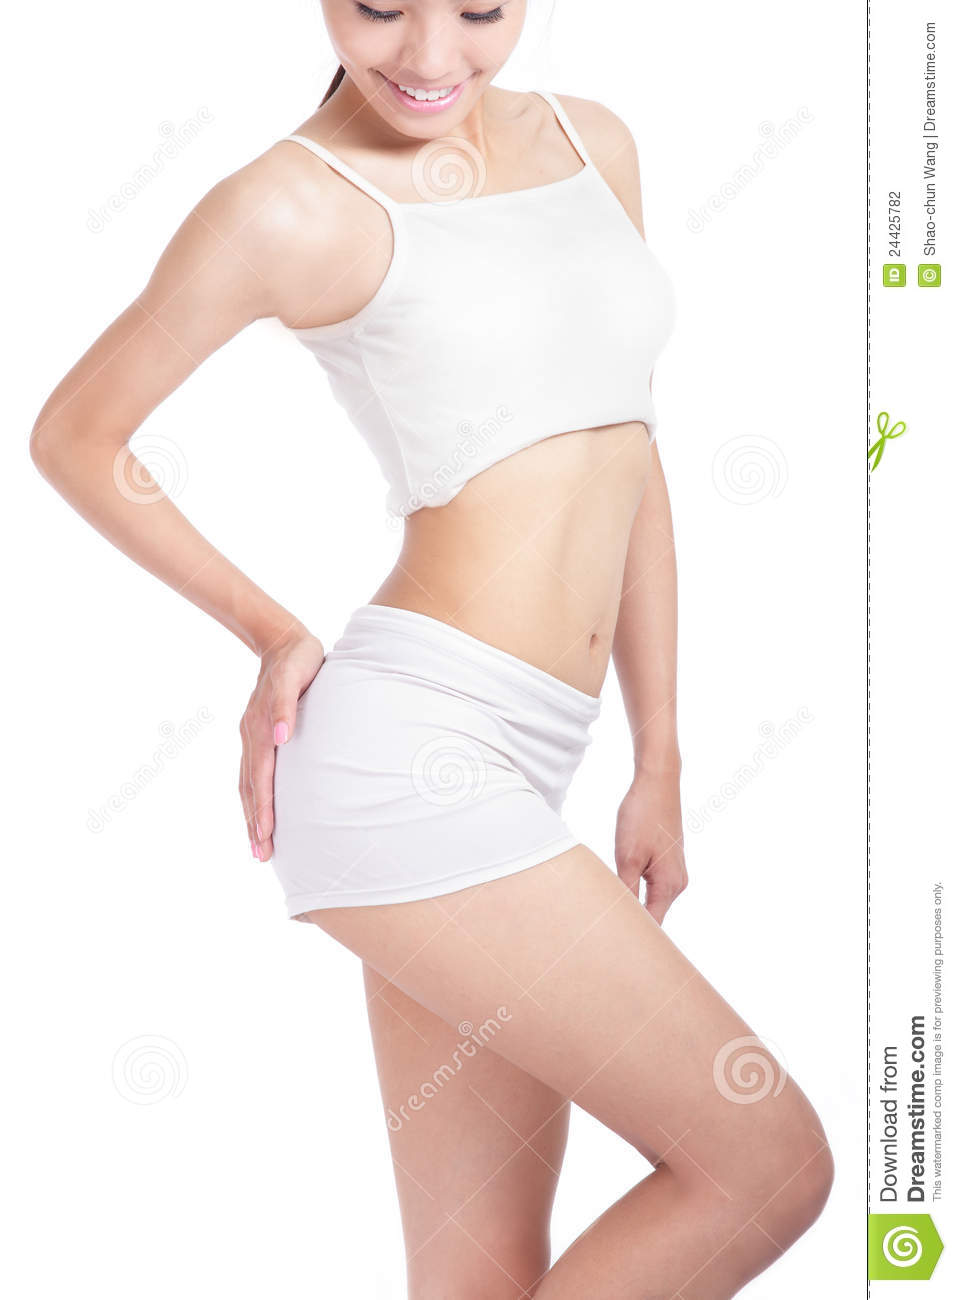 Sexy body without face regret